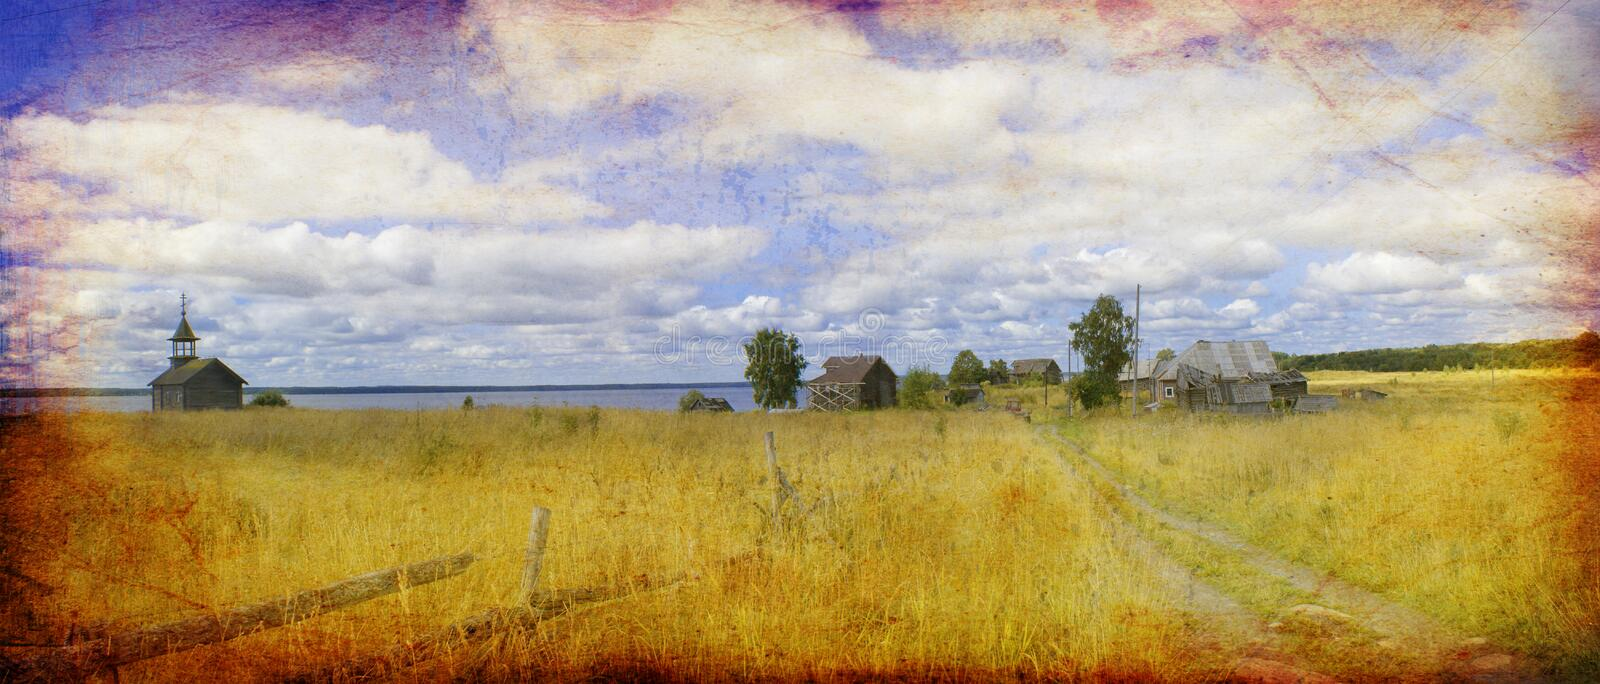 The rural landscape, Russia royalty free stock image